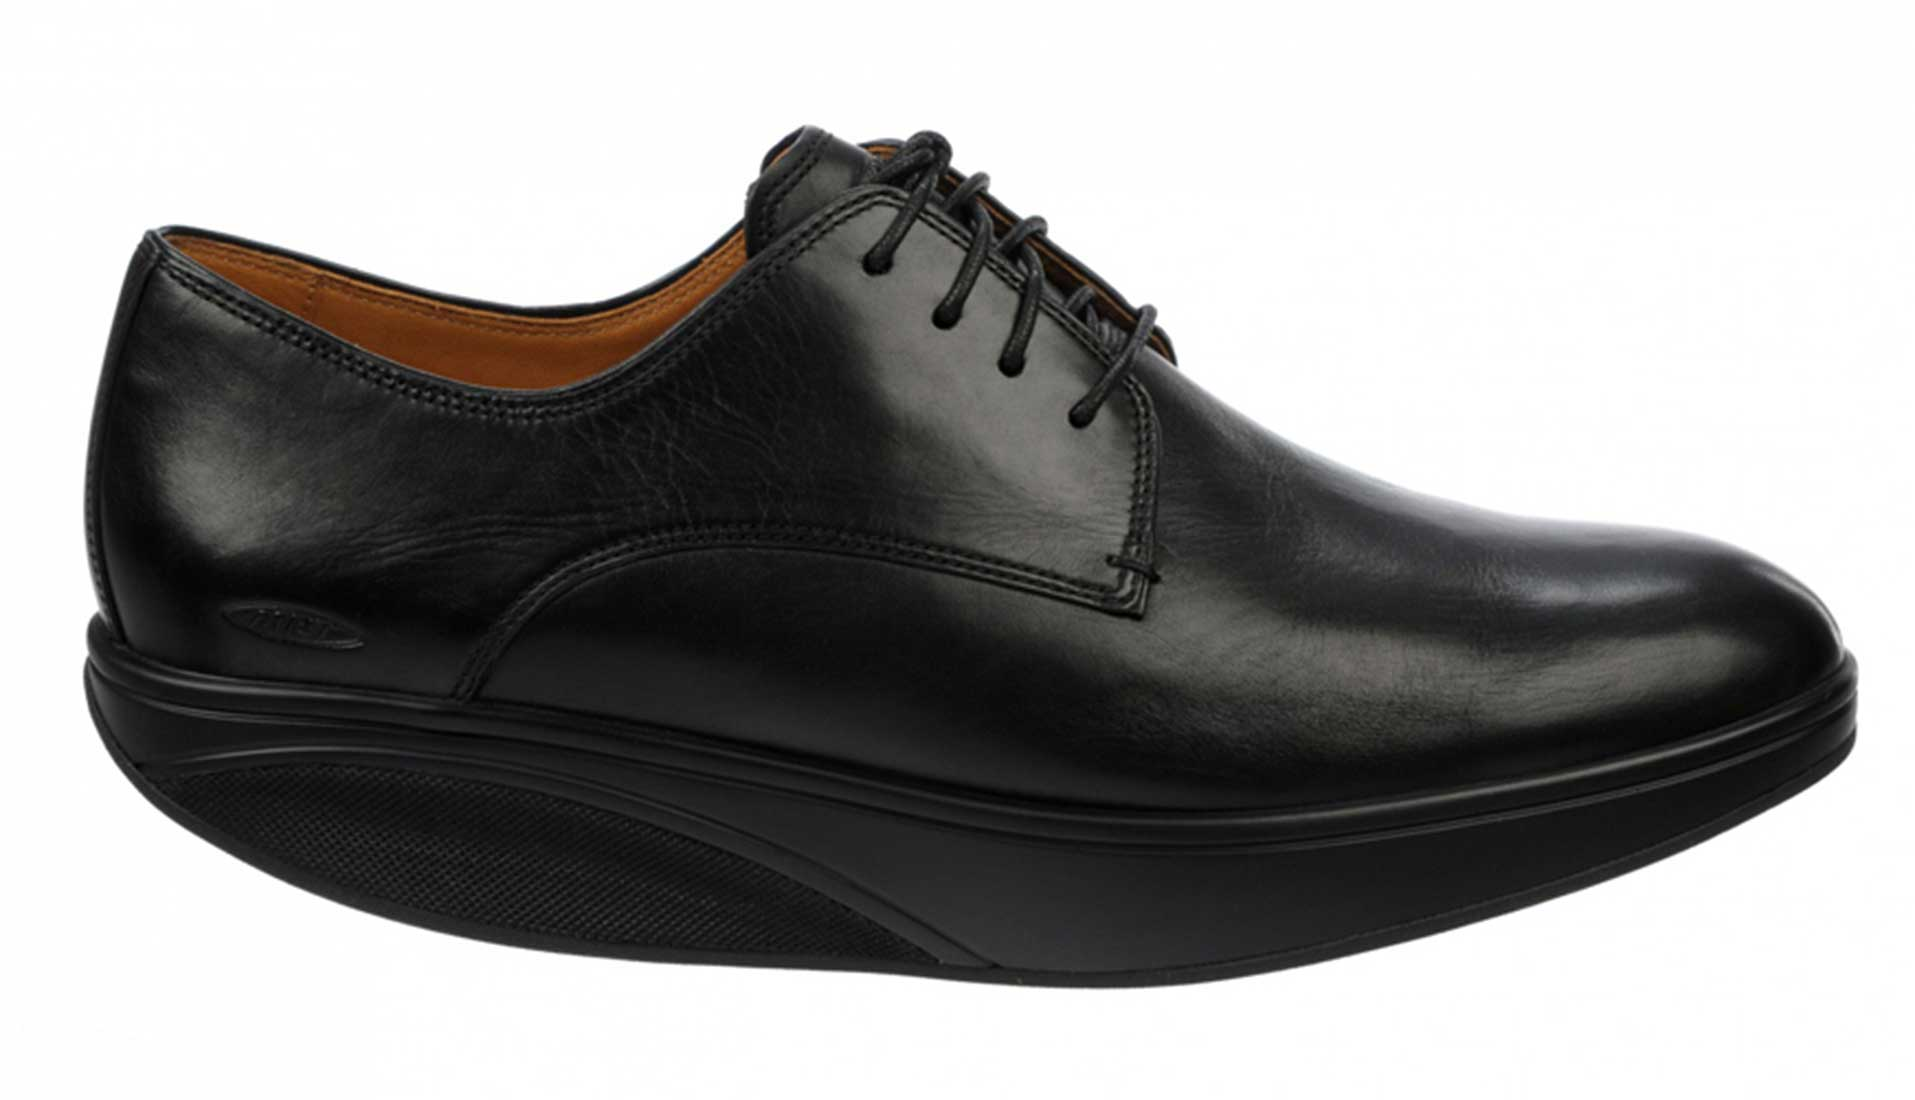 463349d955f5 The MBT Men s Kabisa 5 Oxford Dress - 700487 - The MBT Kabisa 5S is the  newest version of the ever popular line of men s dress shoes with classic  oxford ...